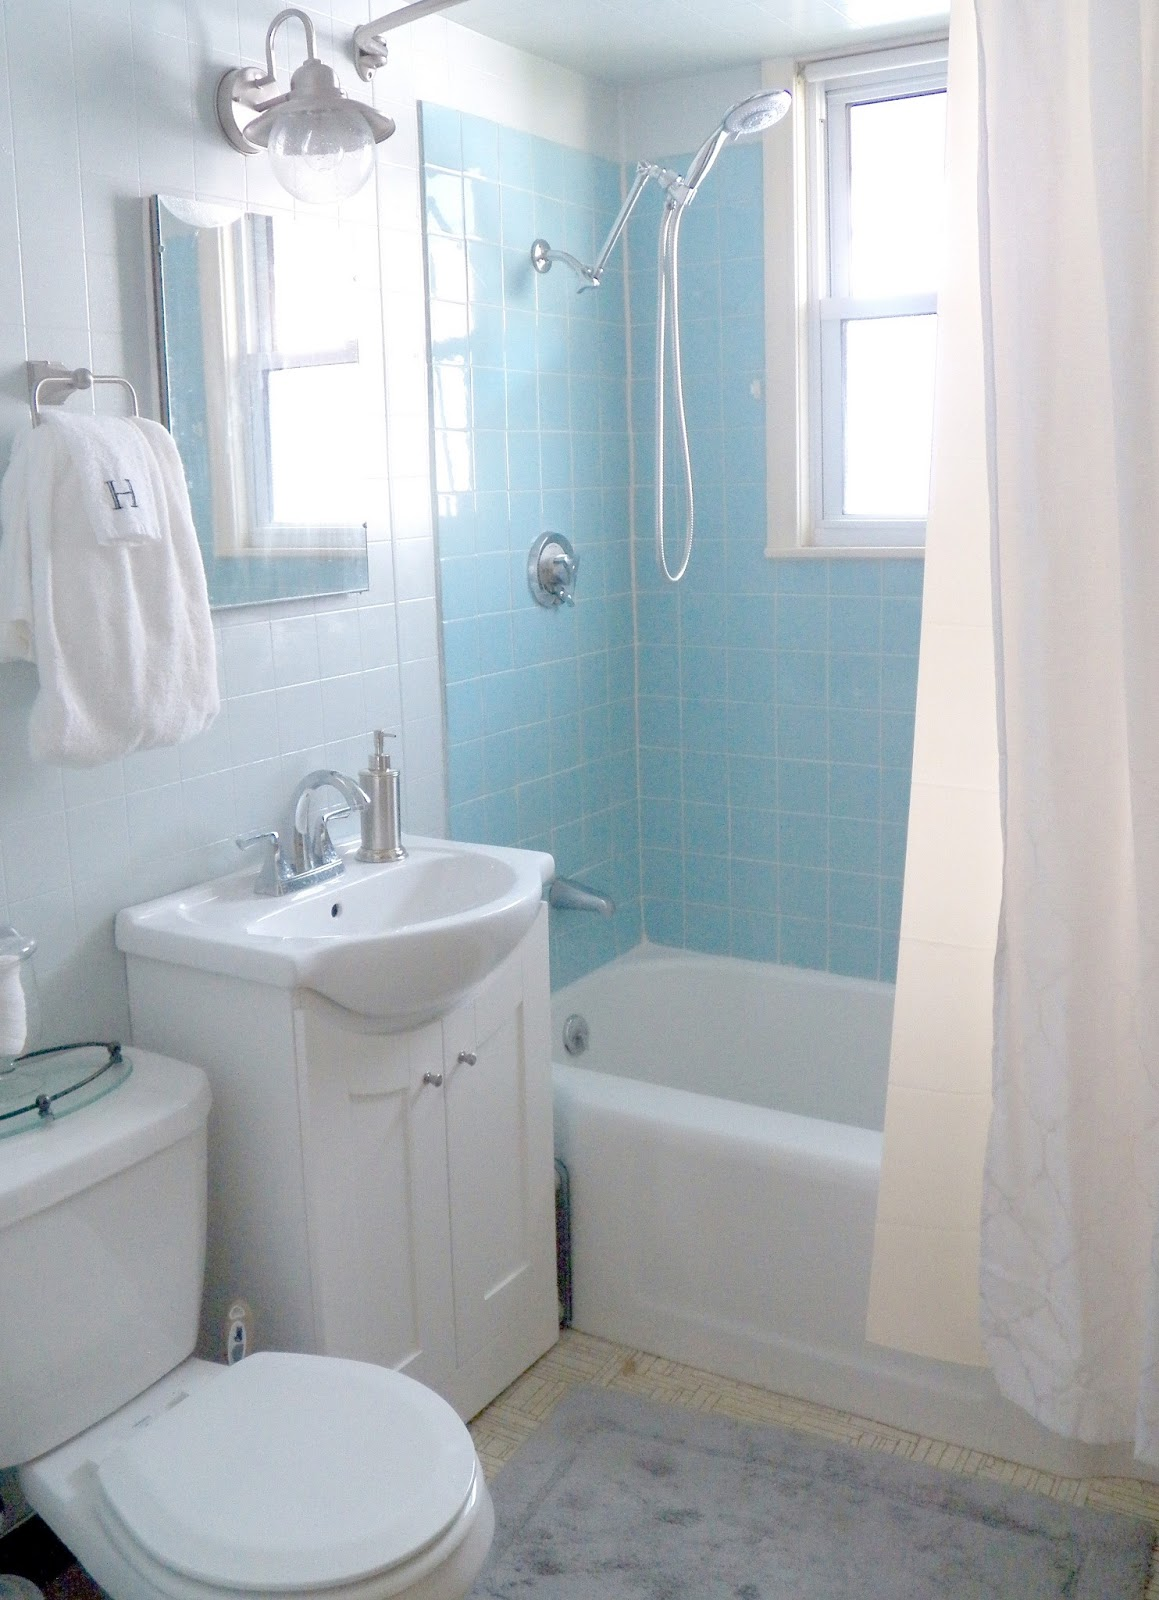 How to design a bathroom remodel - Bungalow Bathroom Remodel Viewing Gallery